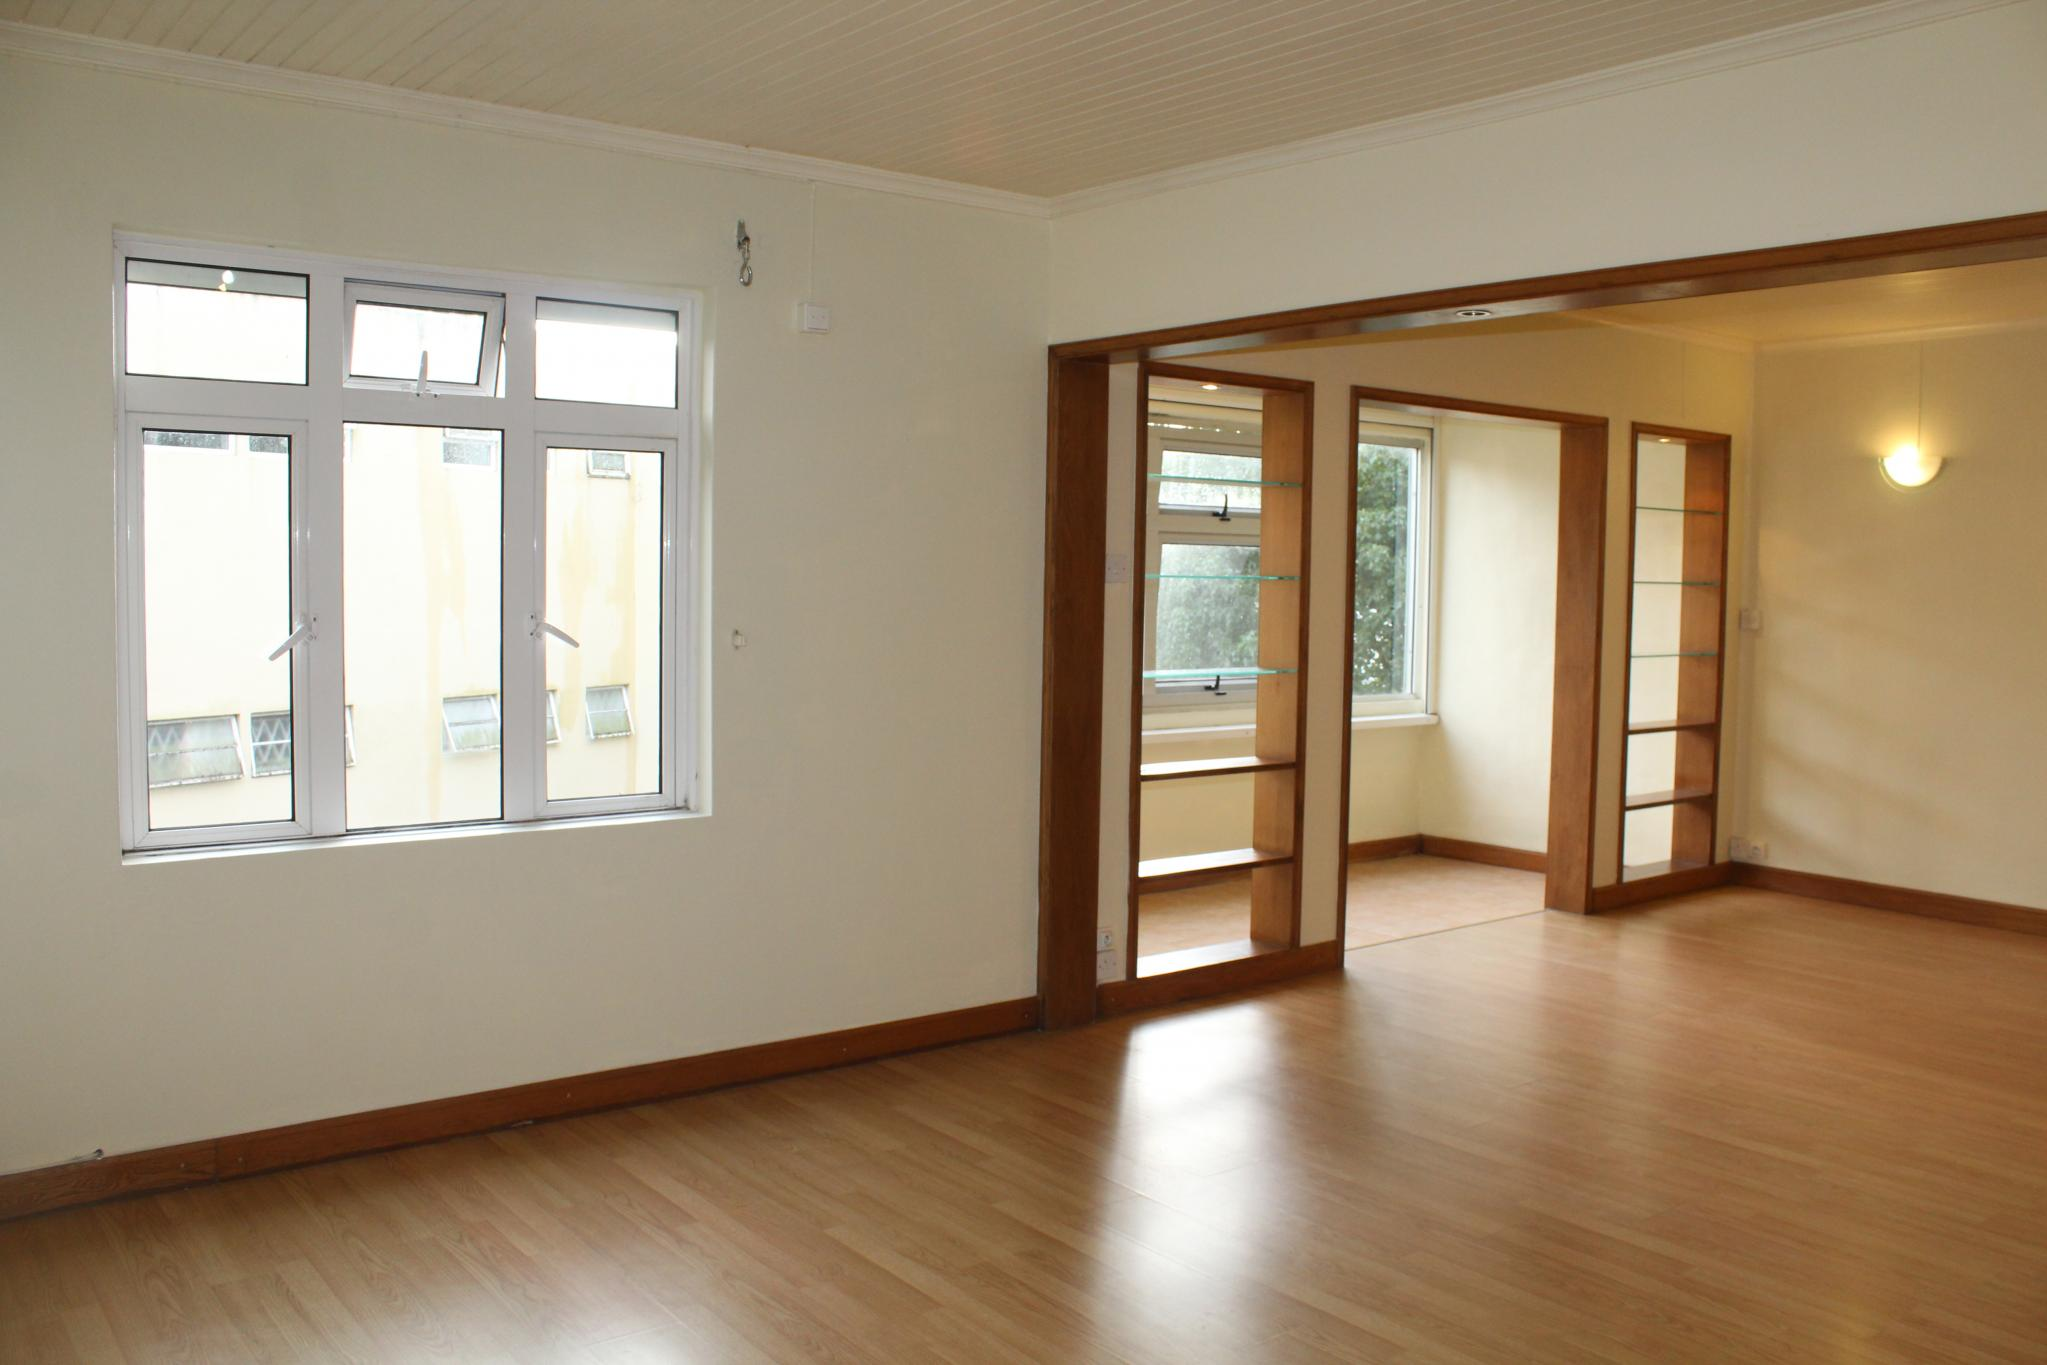 FOR SALE – Unfurnished apartment of 118 m2 located on the 2nd floor (without lift) of a residence in Curepipe.